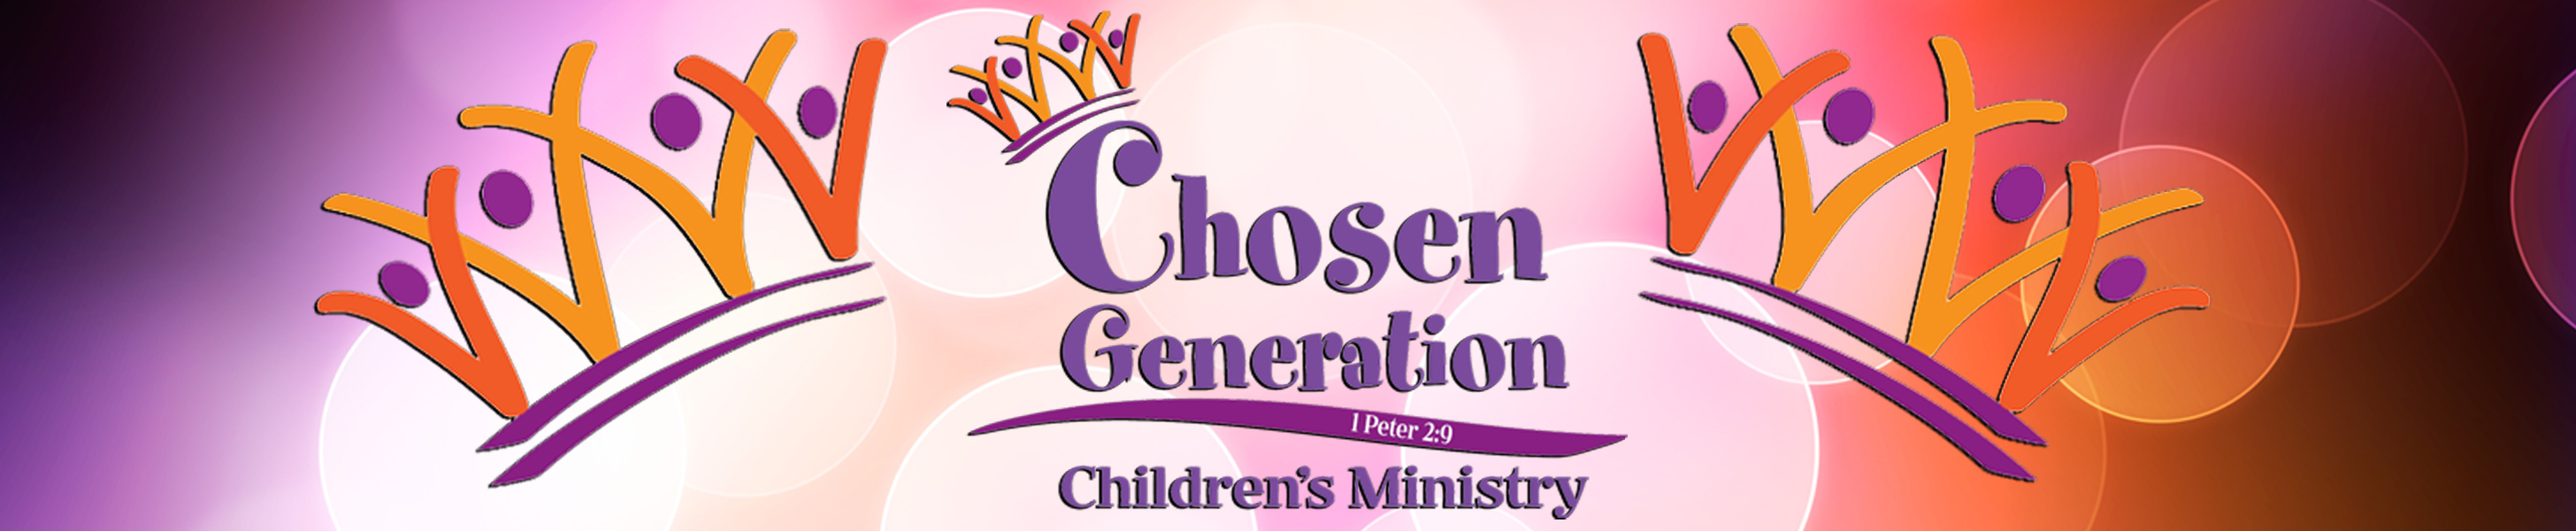 children's ministry, chosen generation children's ministry